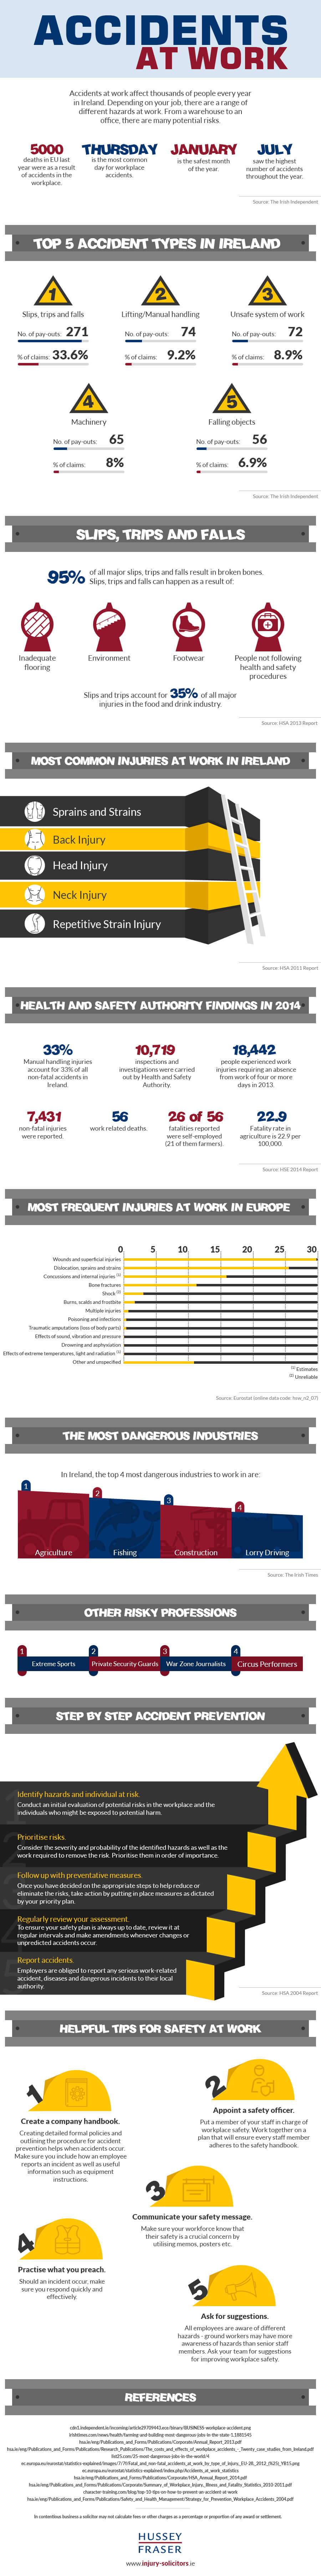 Accidents-at-Work-infographic